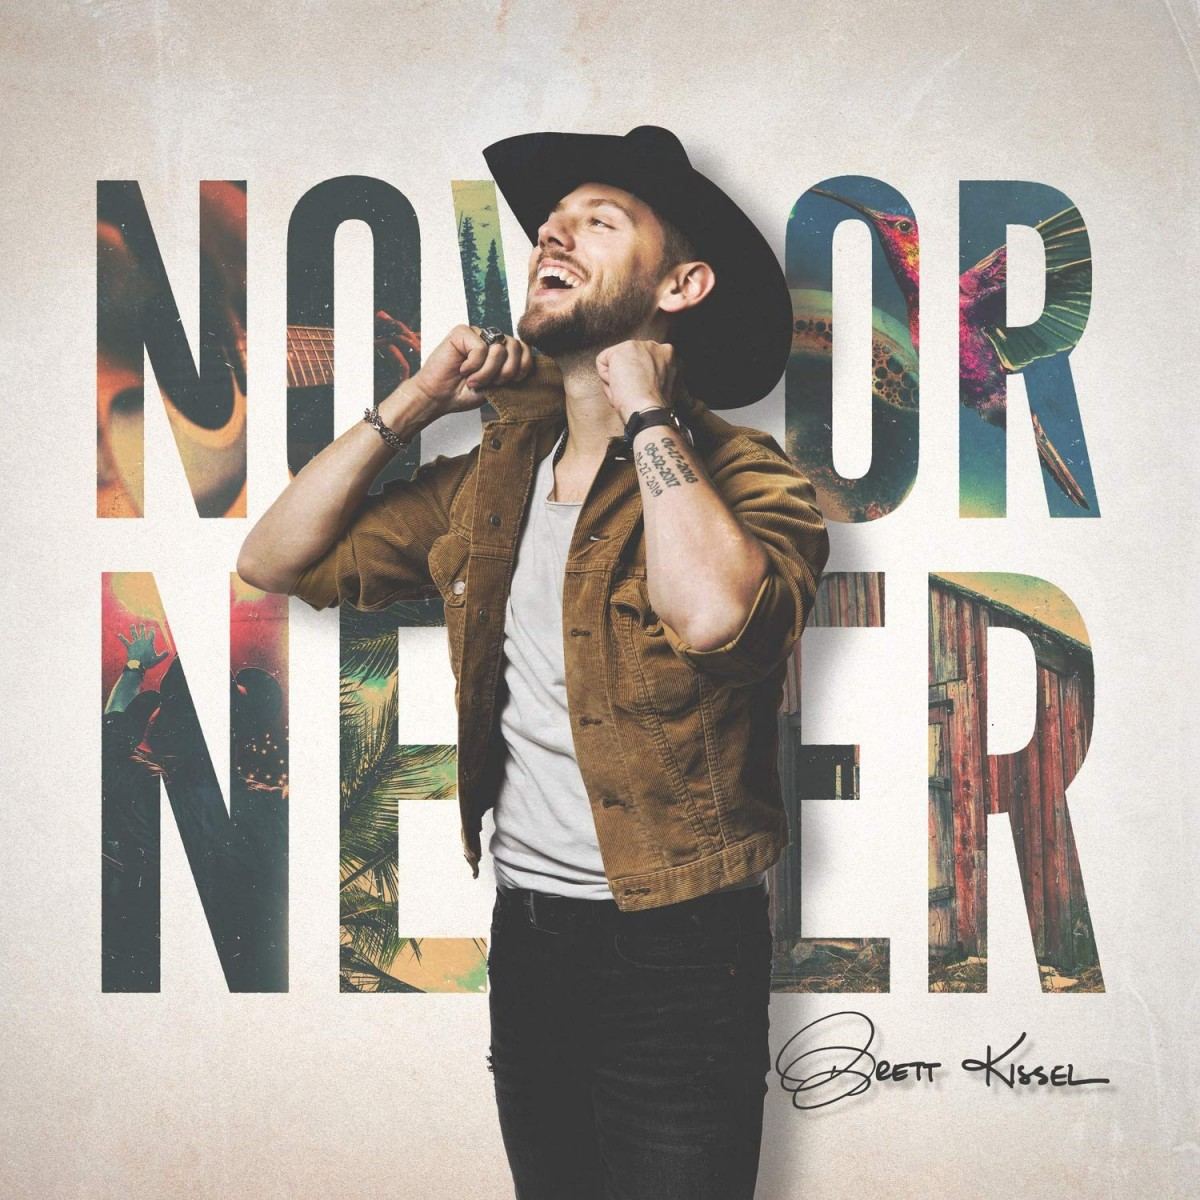 Country Round-up with Brett Kissel, Karli June, Jason Blaine, Don Amero and Black Mountain Whiskey Rebellion, and more